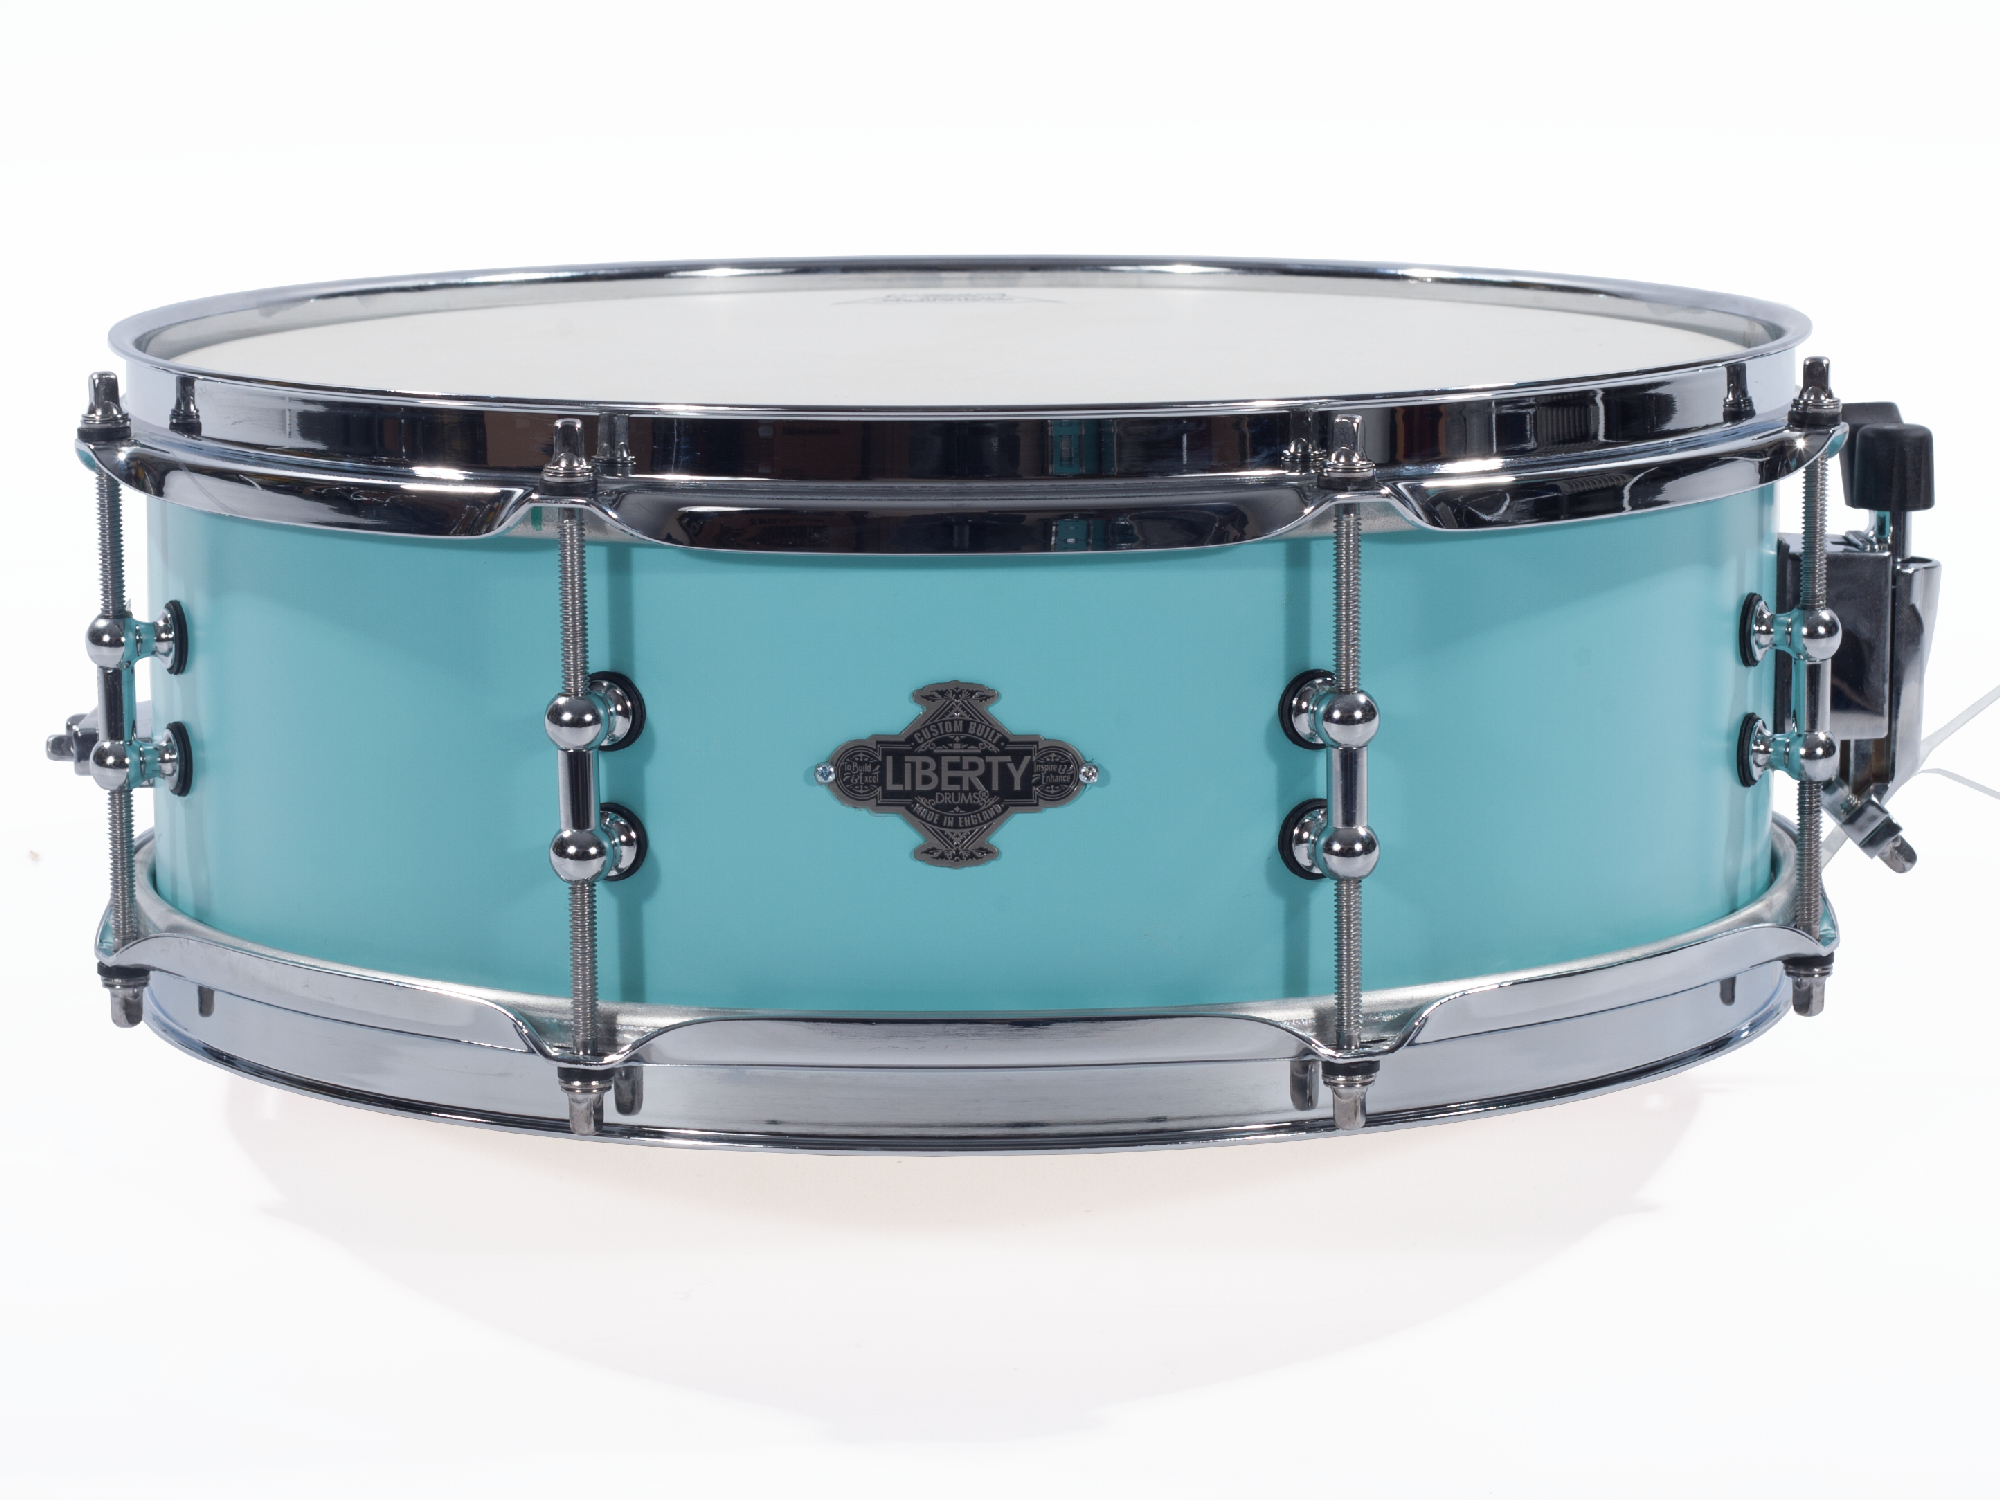 Unique Snares Series - 14x5 Seafoam Green Kick Snare Drum